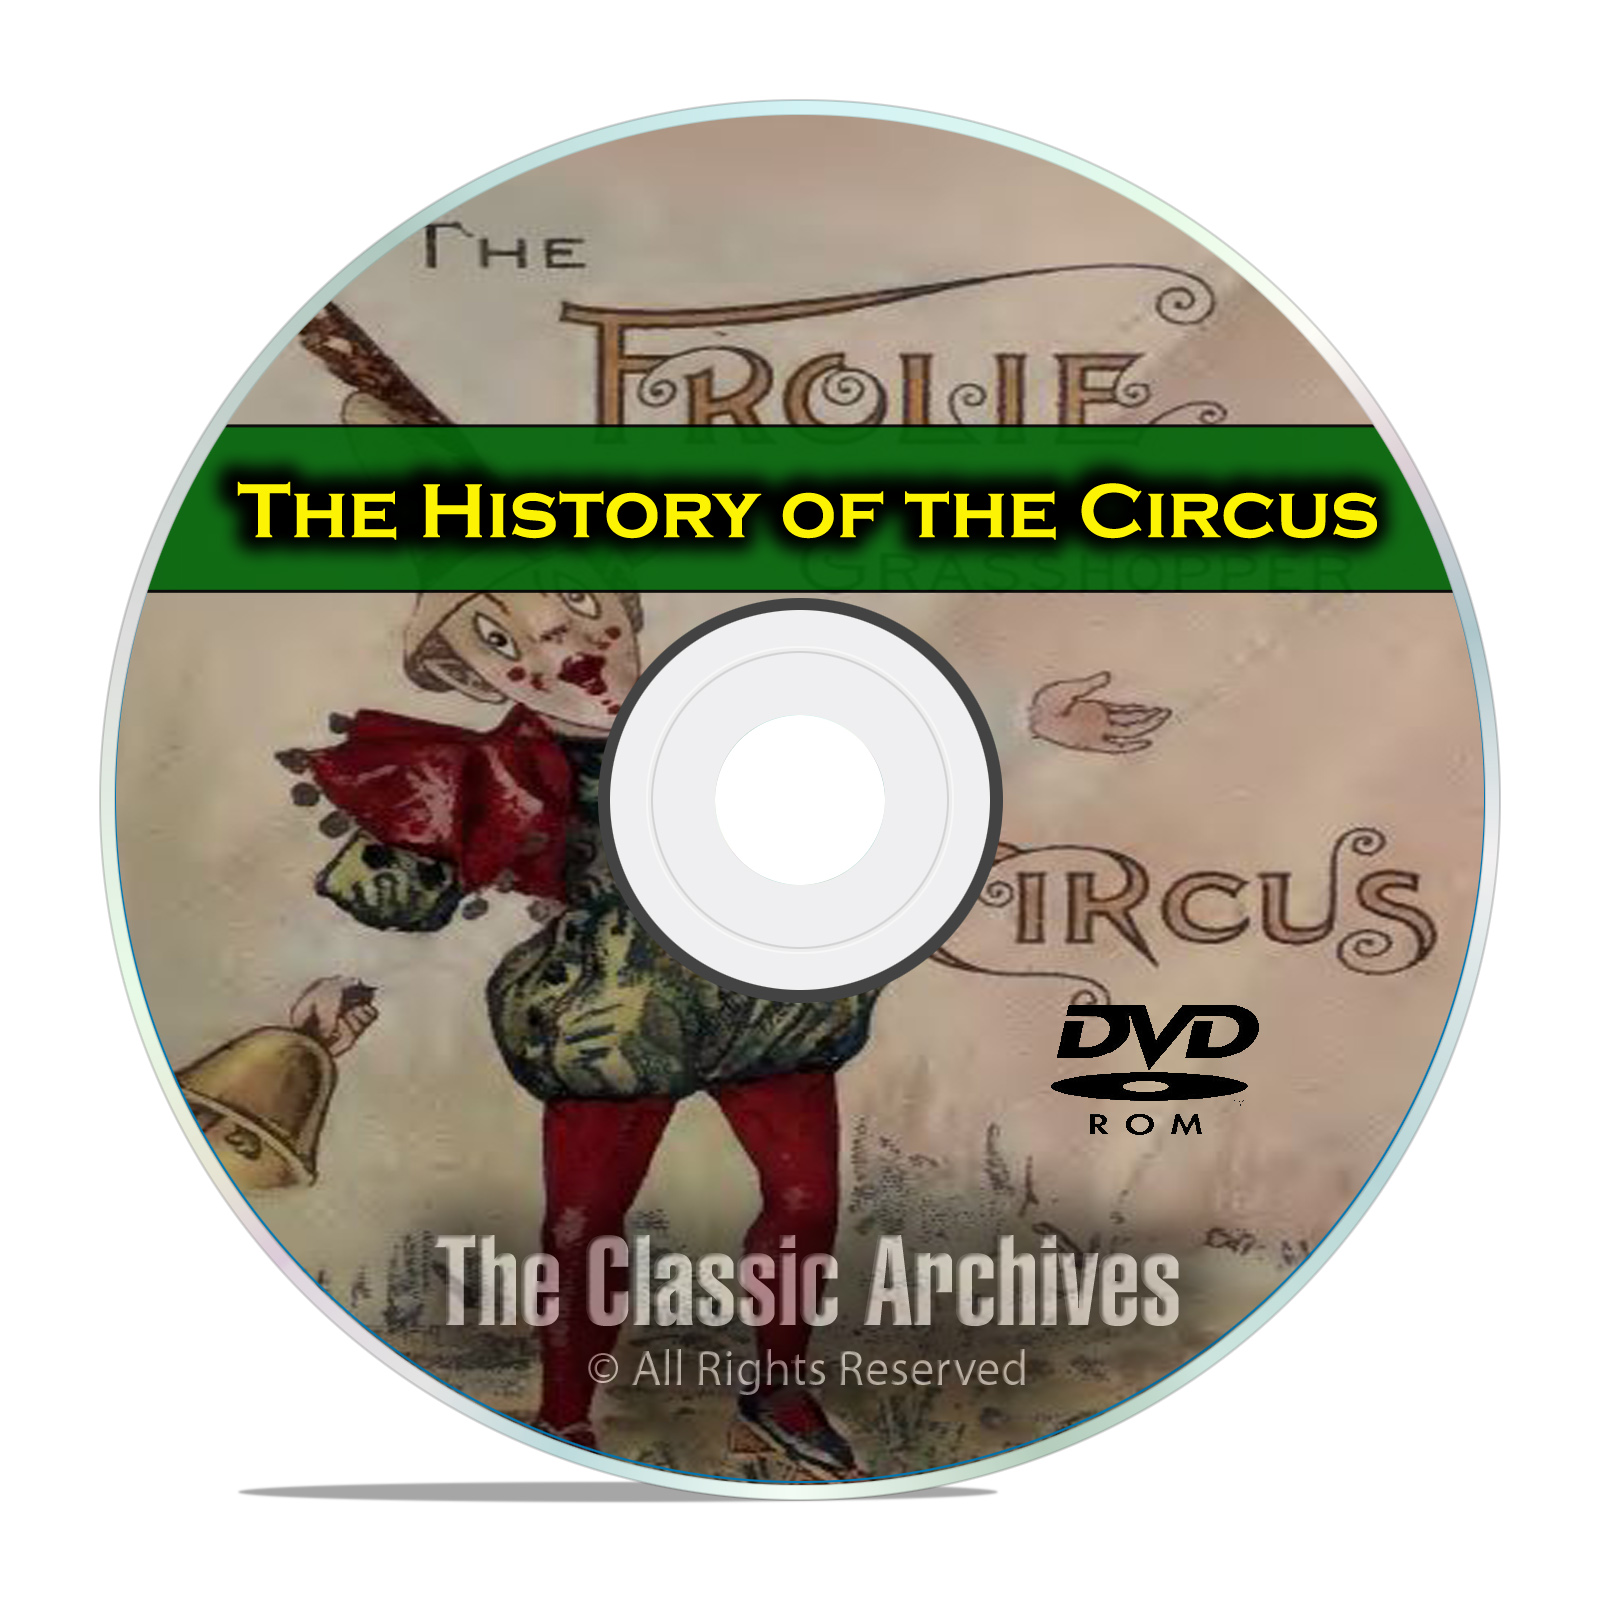 The History of the Circus, Ringling Brothers Barnum Bailey, Posters PDF DVD